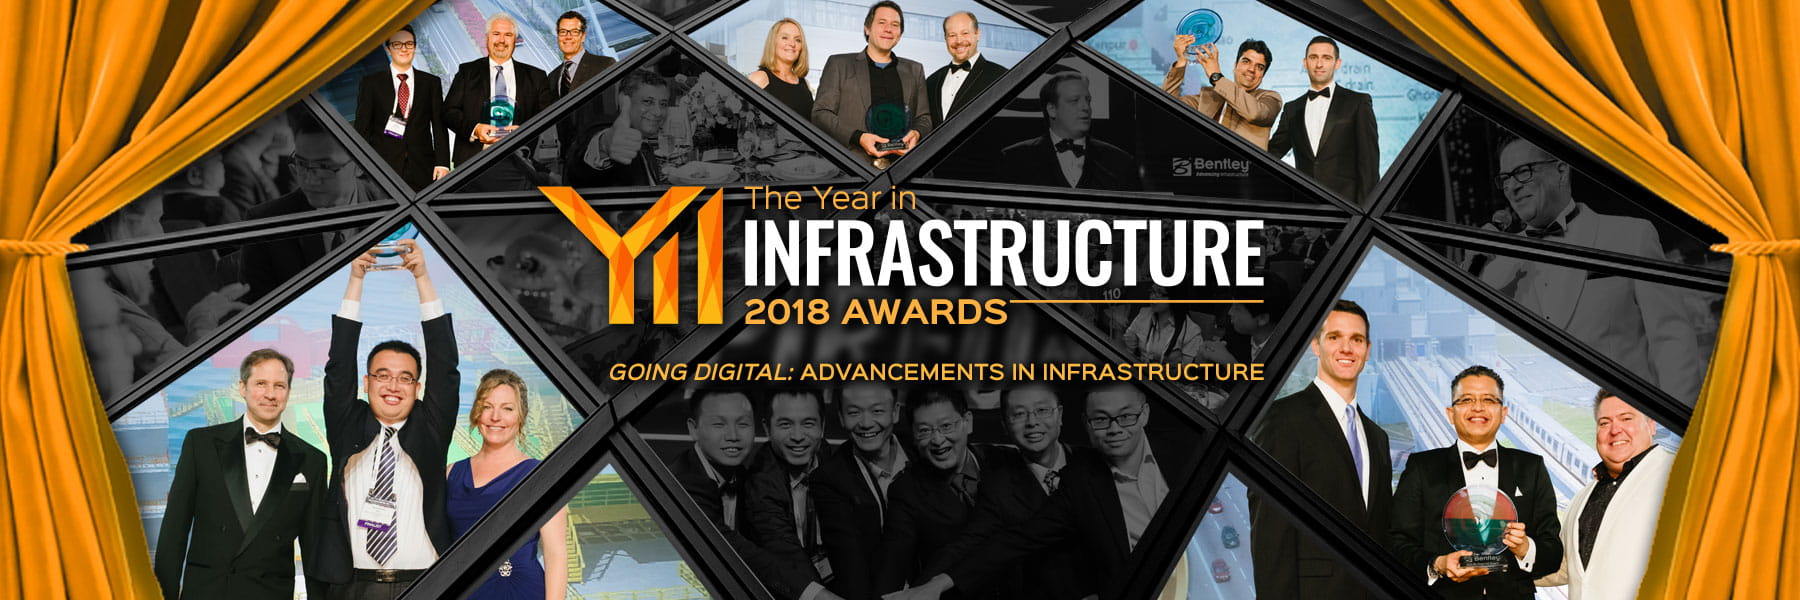 The Year in Infrastructure 2018 Awards